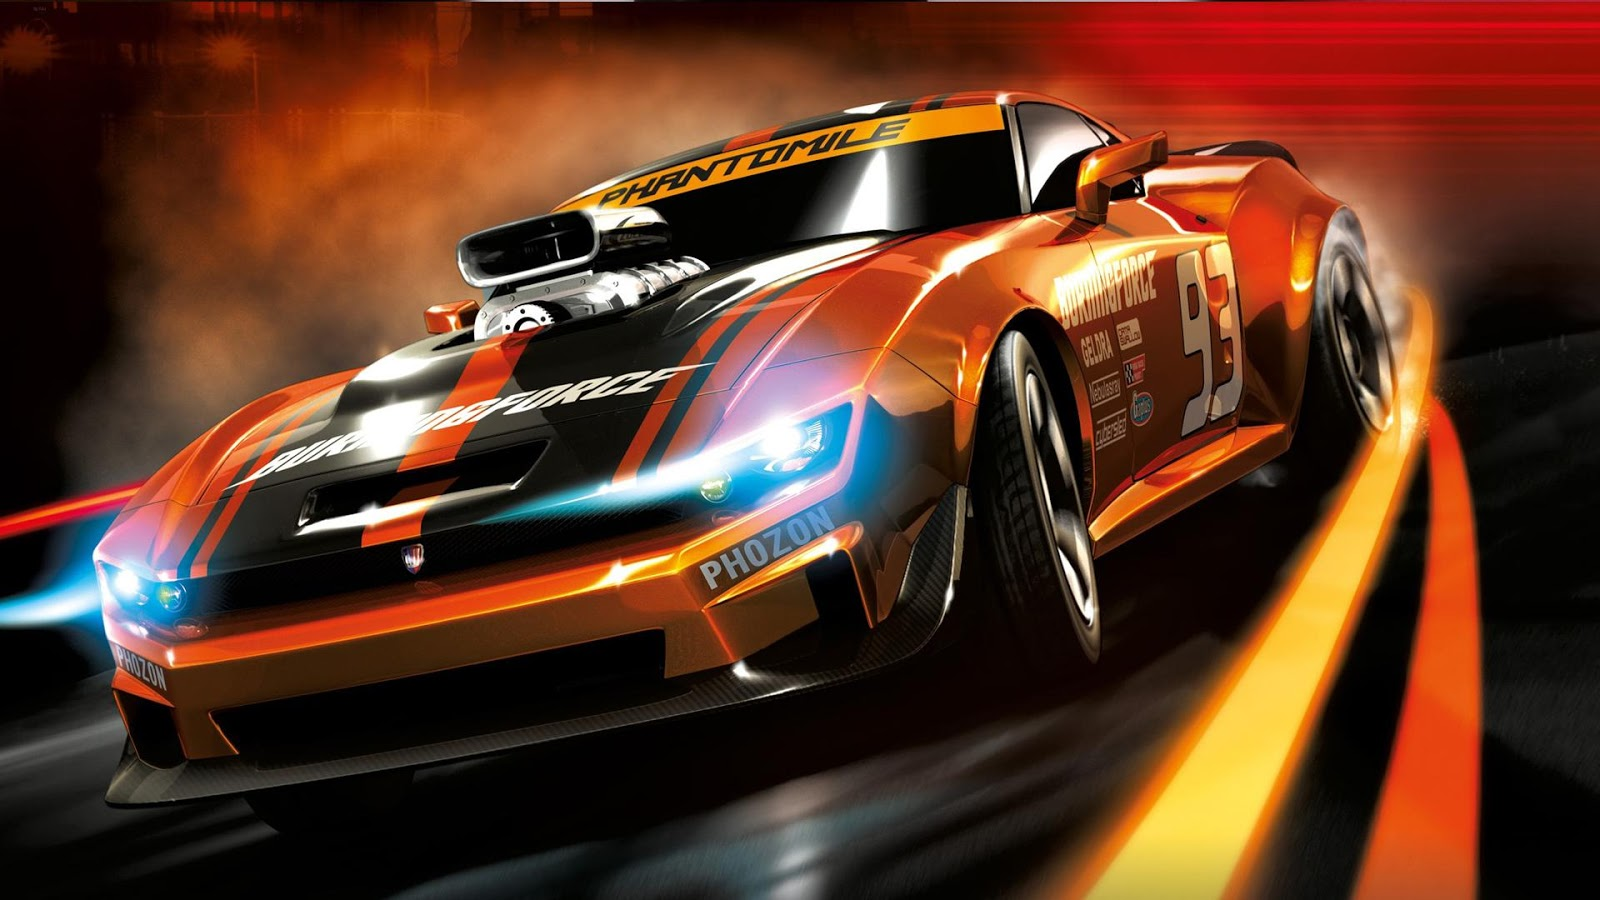 3D Cars Wallpapers HD 9 Size U003d 1600 X 900